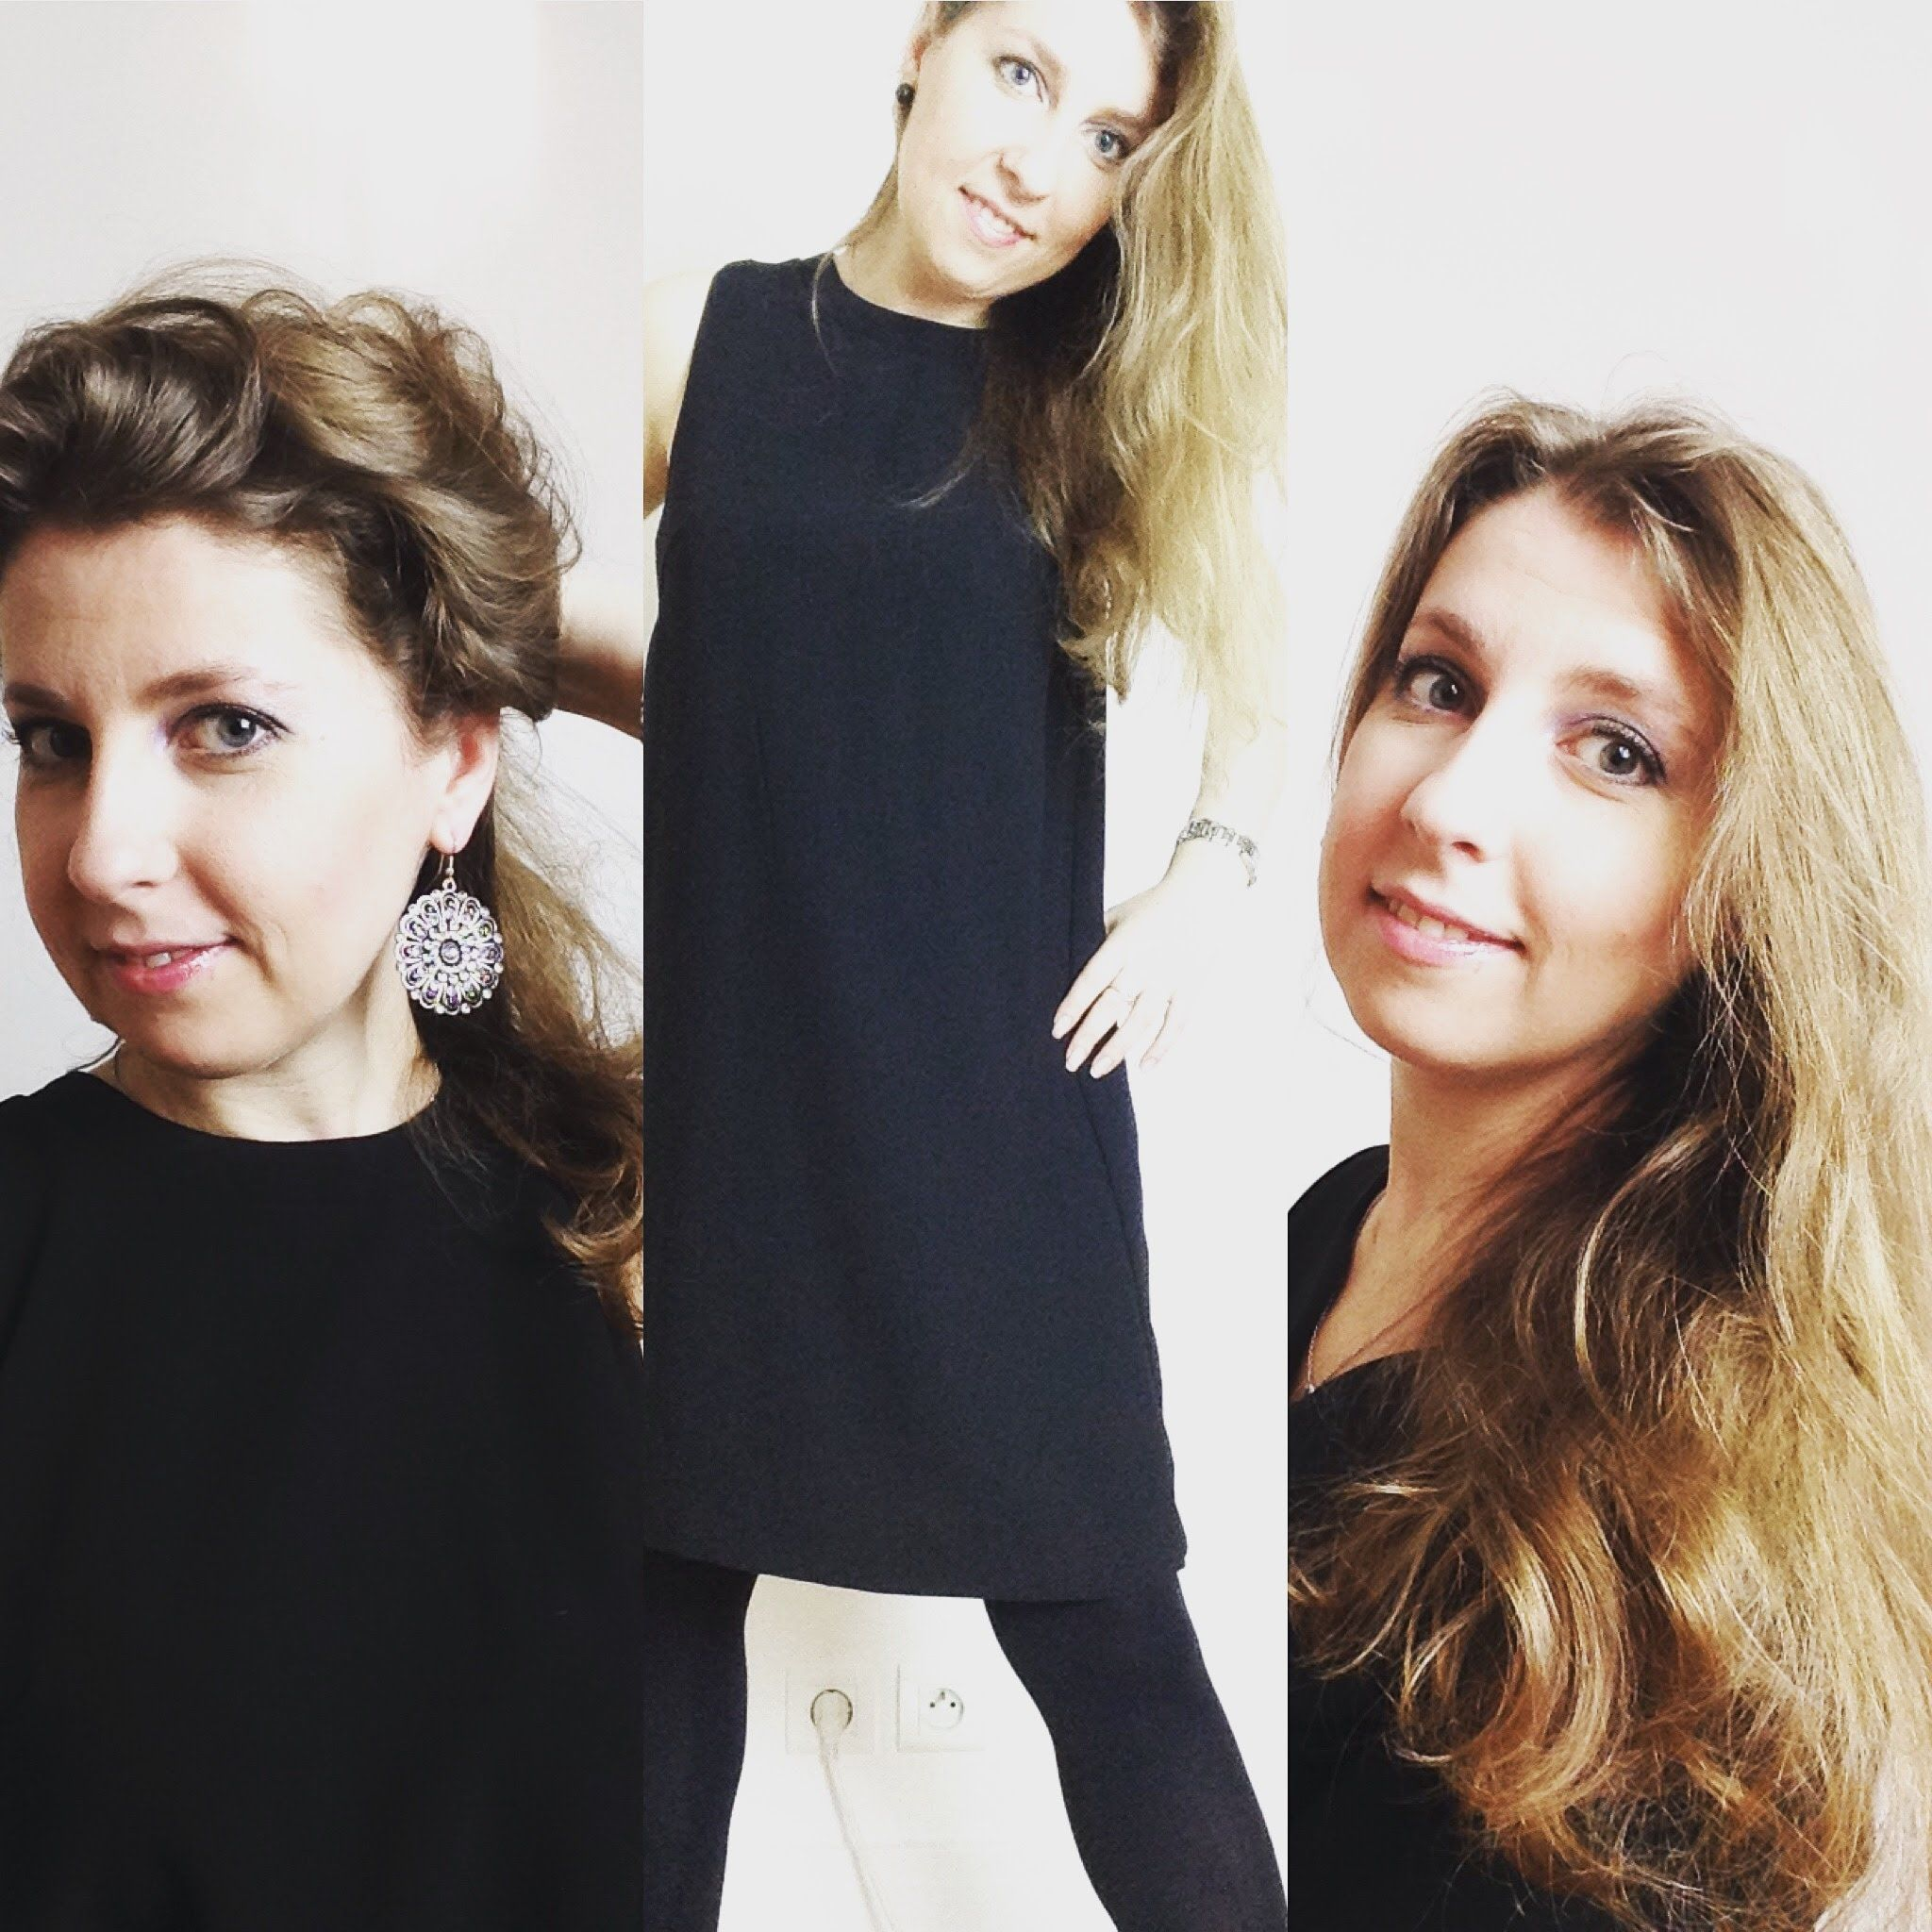 Soldes shopping! My shopping/Ma nouvelle garde-robe